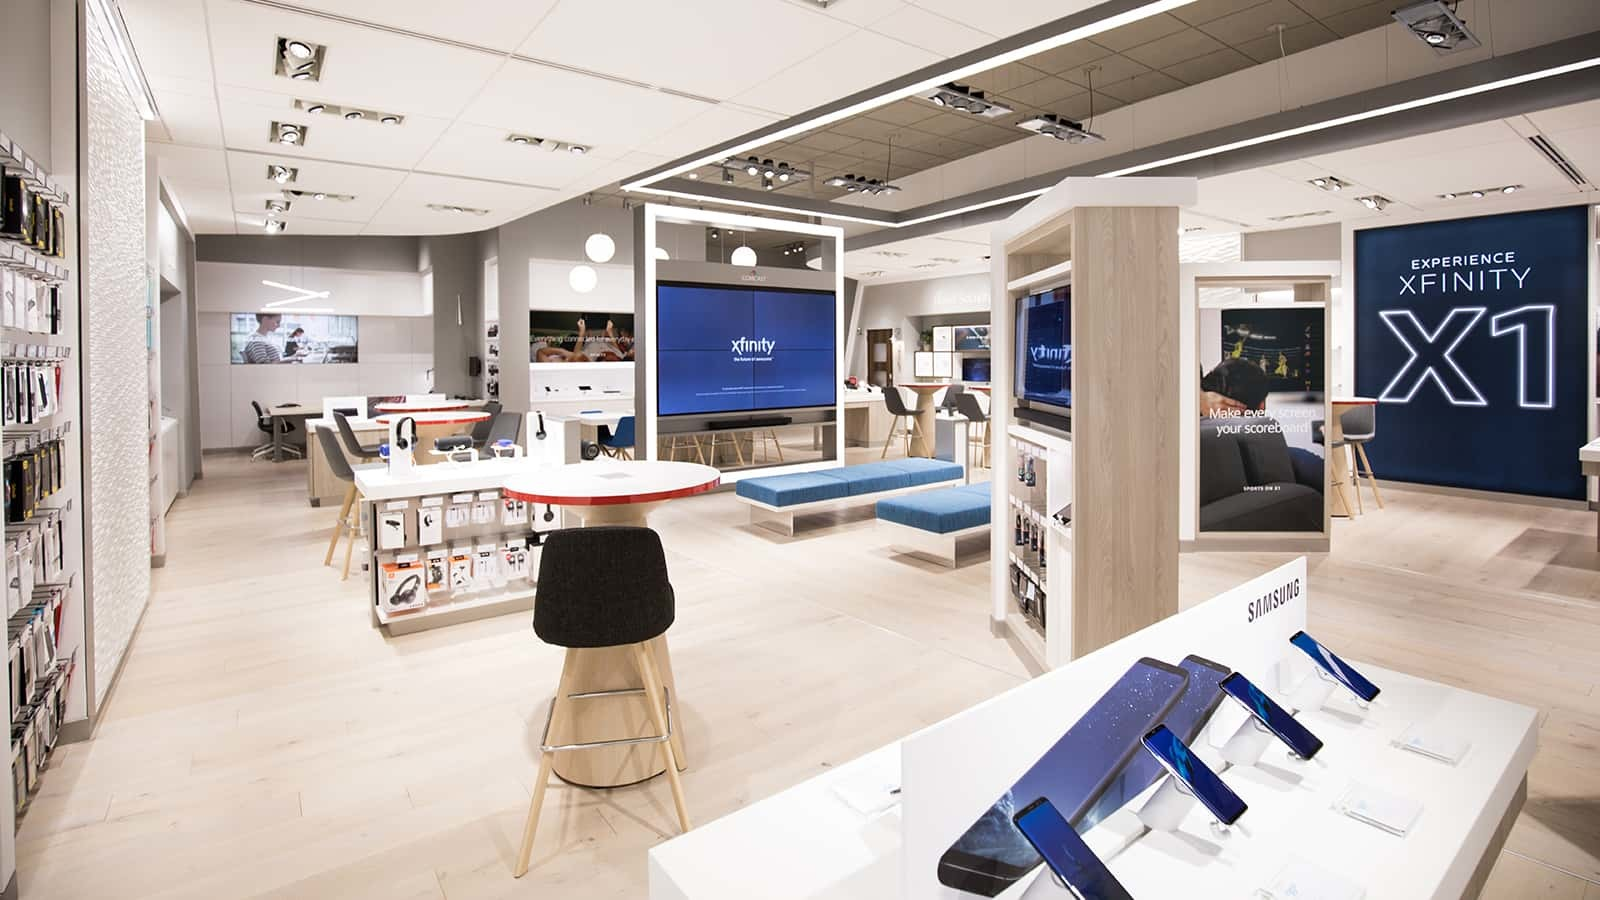 Comcast Xfinity stores showcase a variety of products.